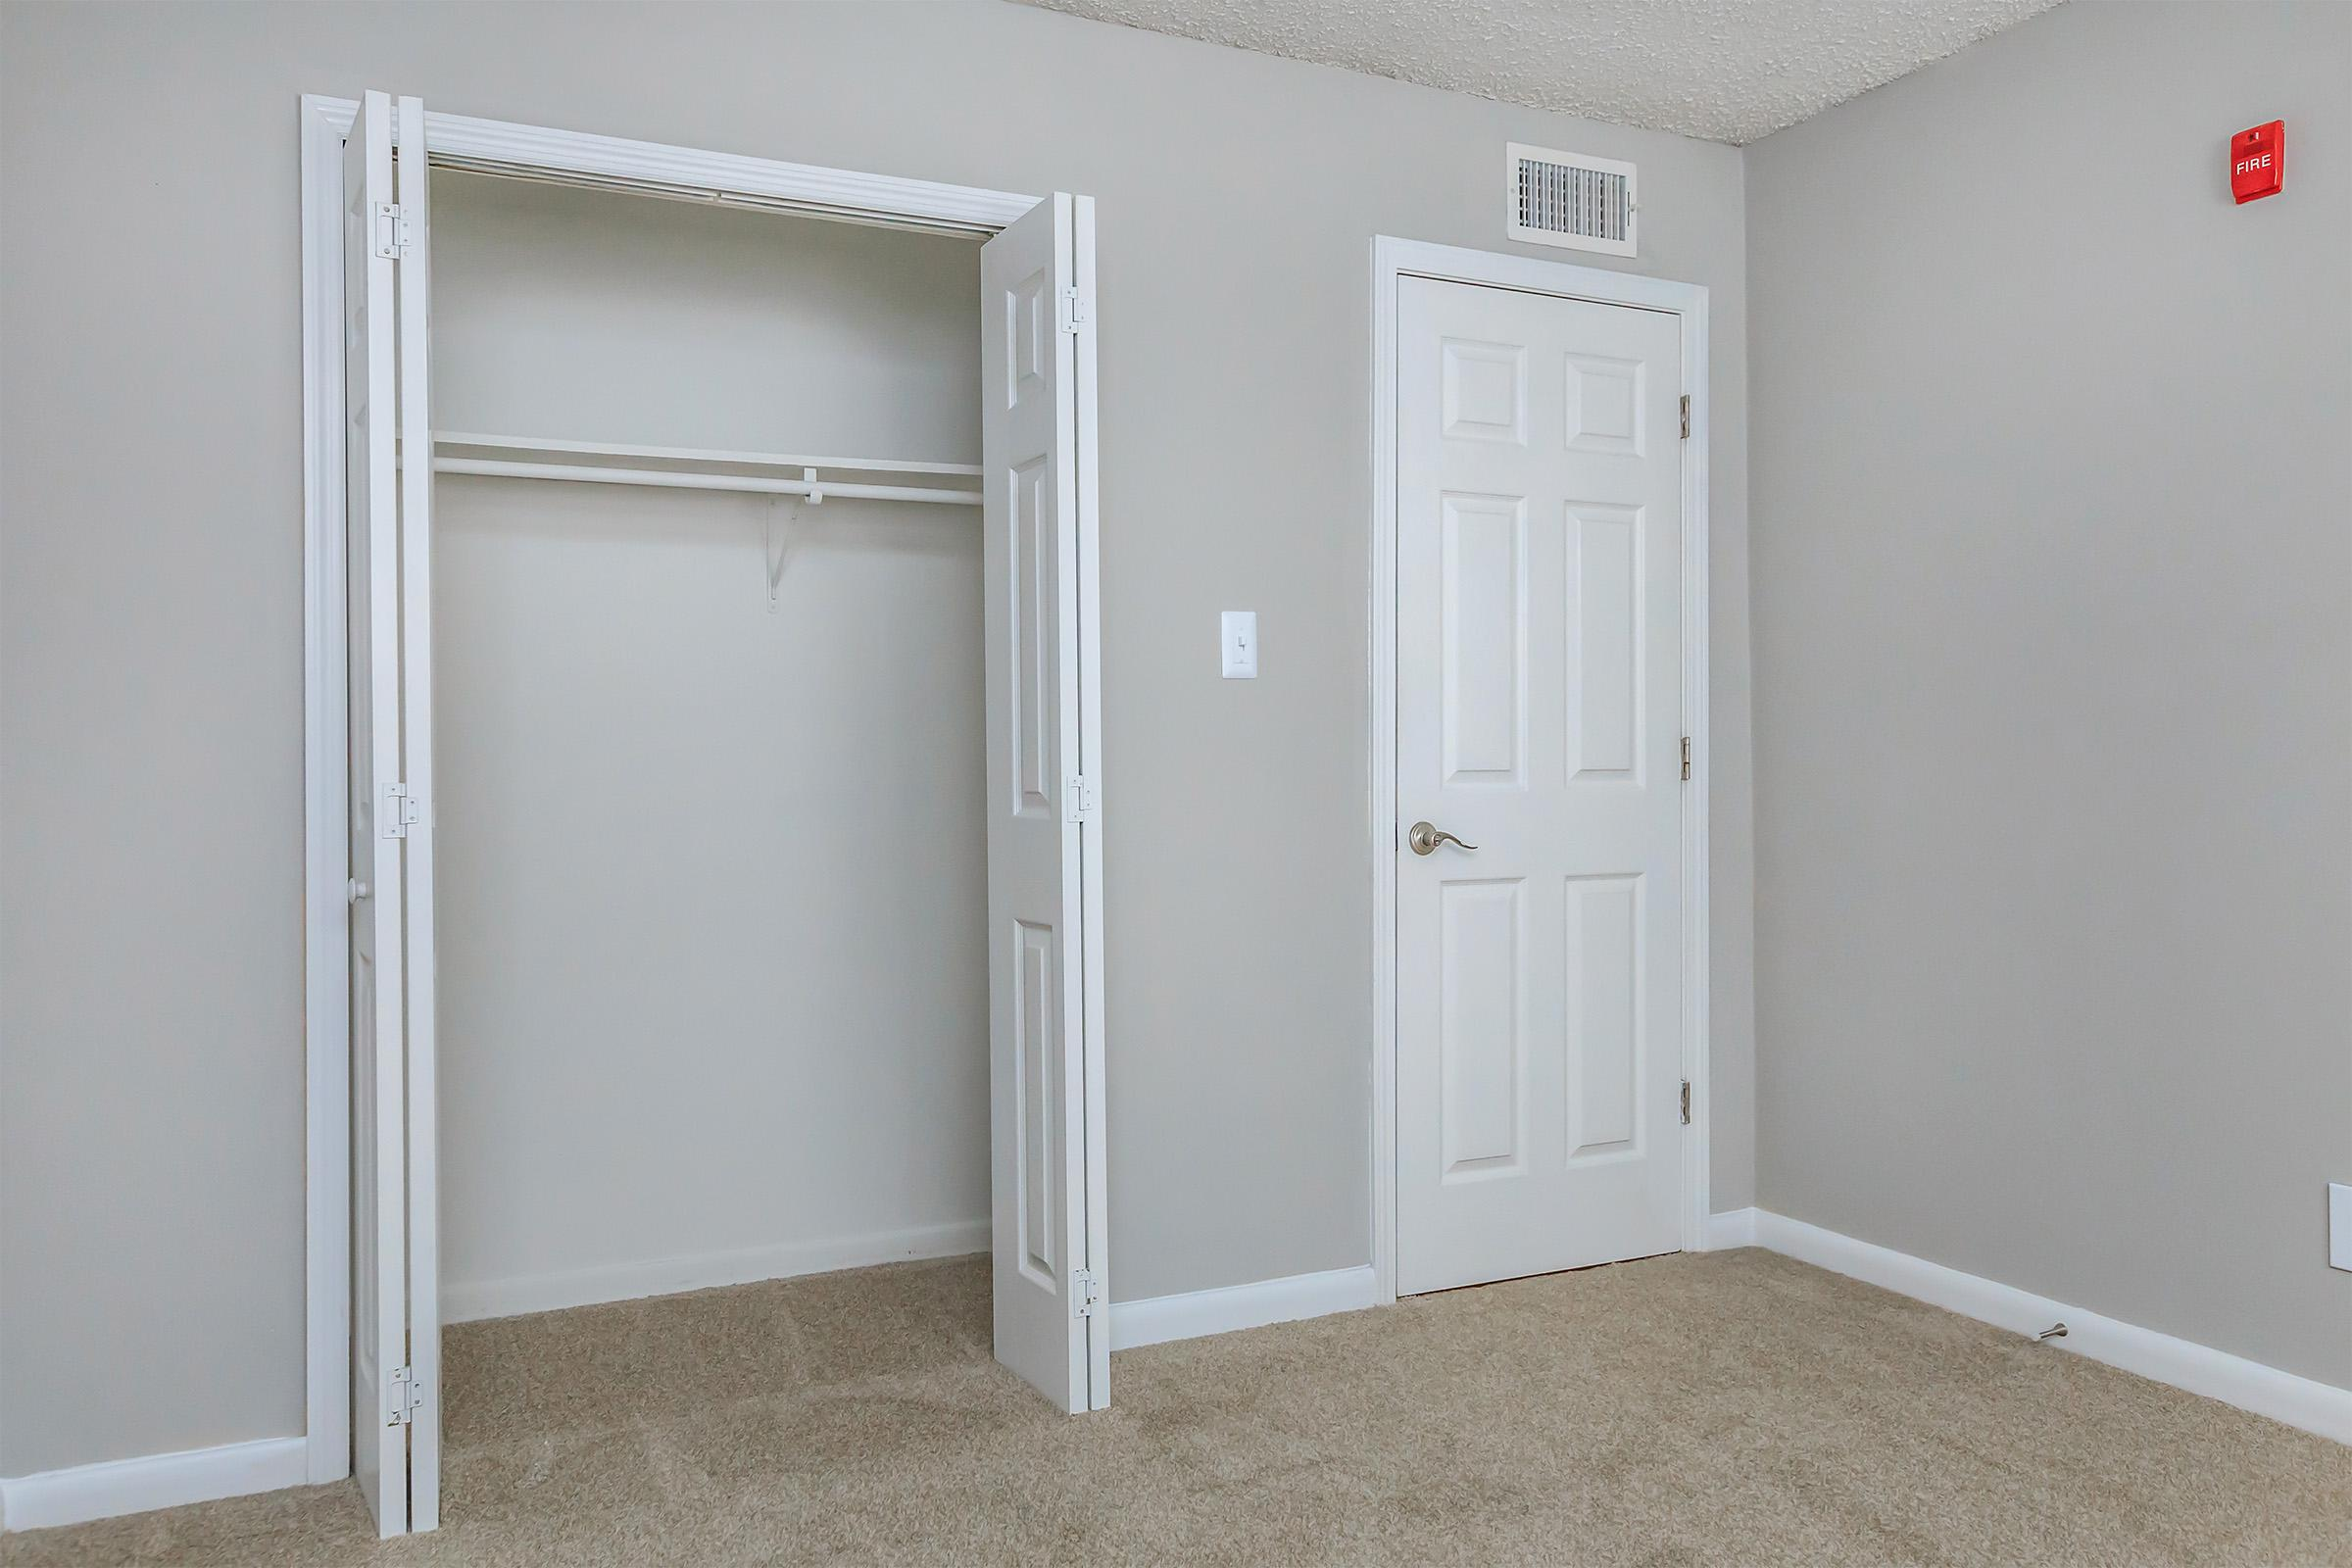 WALK-IN CLOSETS AT KINGSTON POINTE APARTMENTS